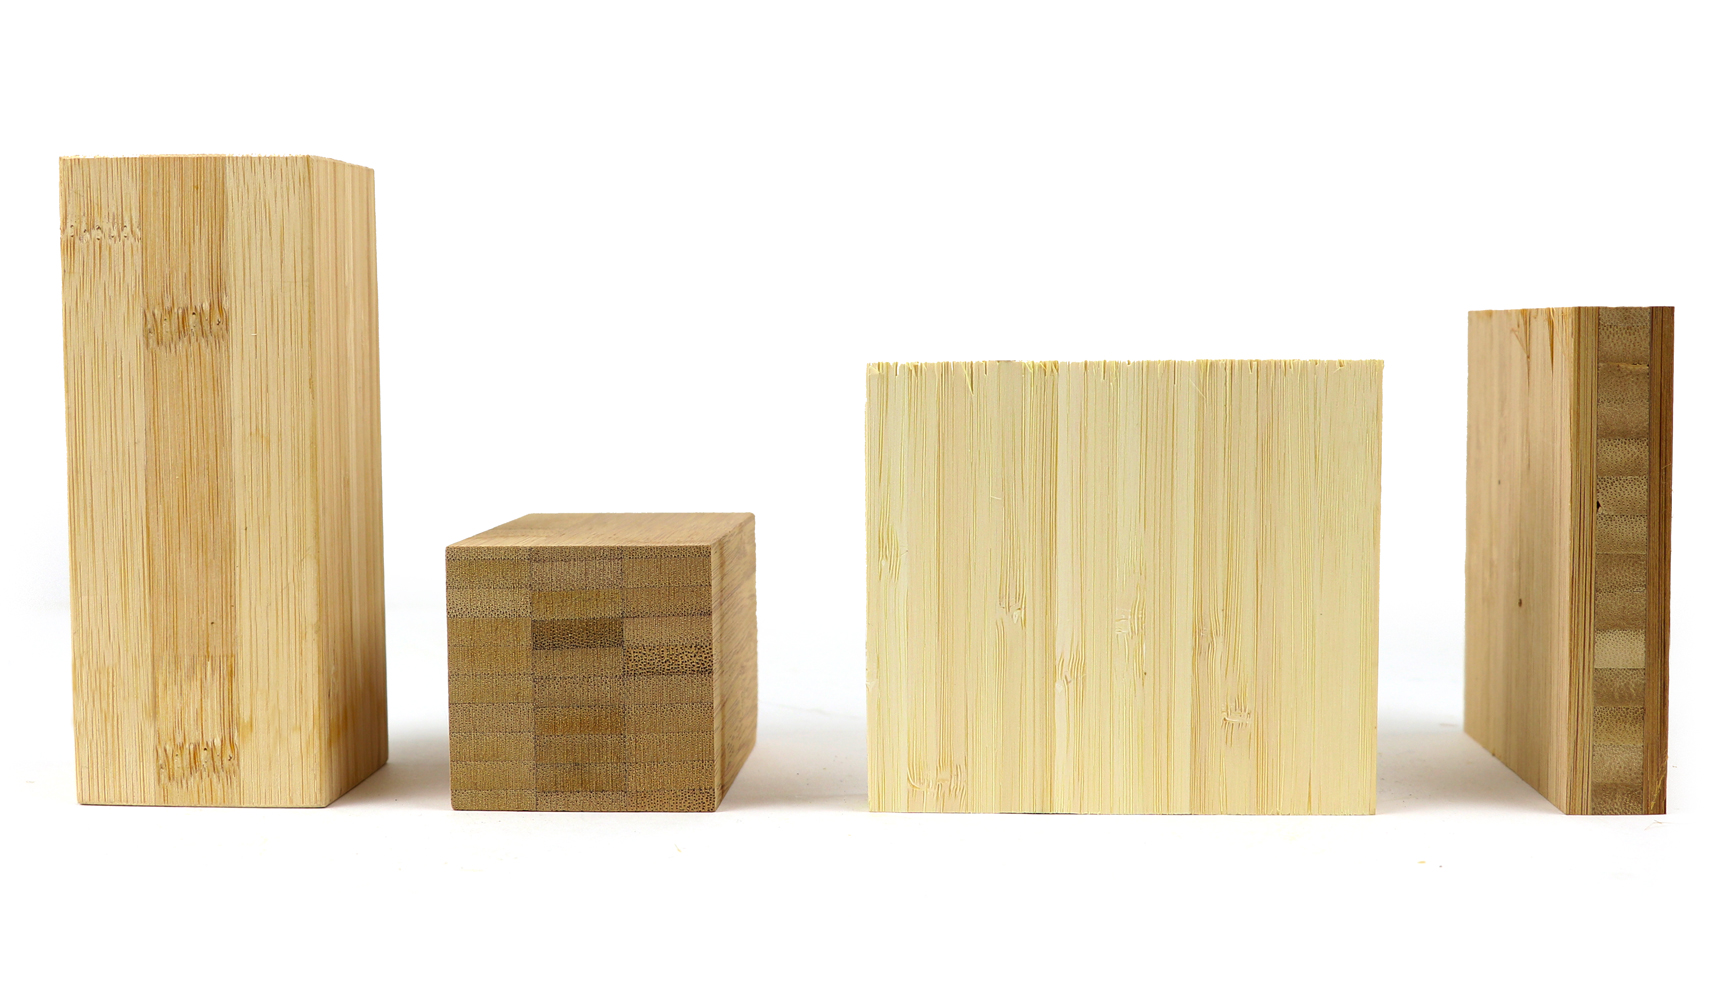 UK Bamboo supplies - The Most Sustainable Alternative to MDF, Chipboard and Plywood